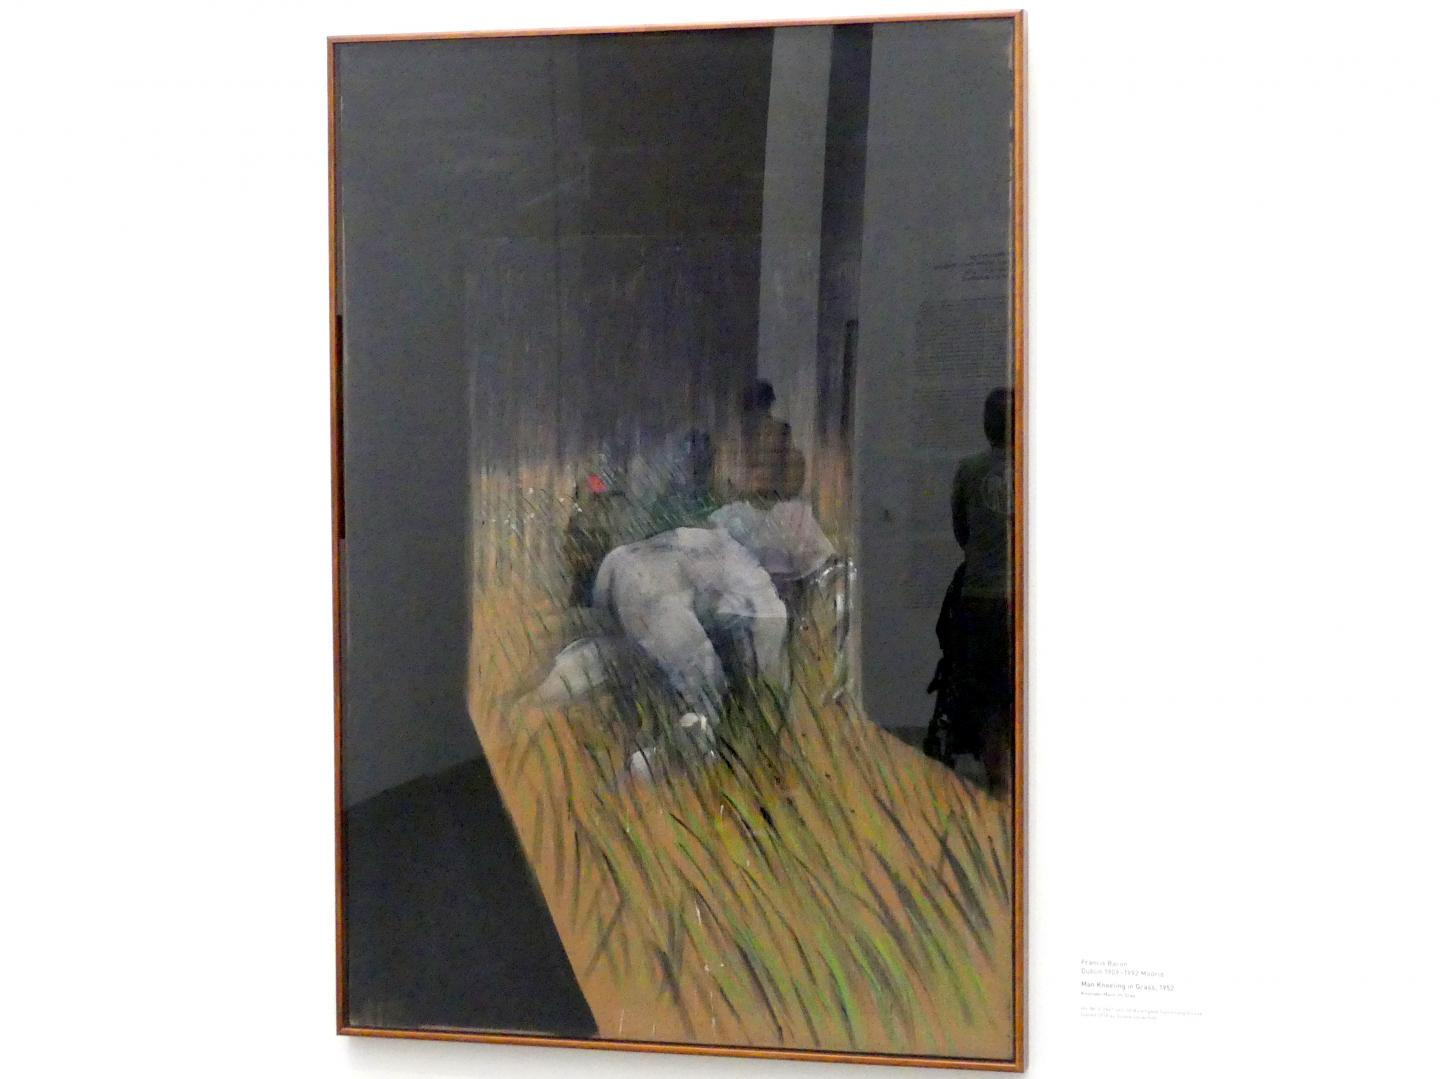 Francis Bacon: Man Kneeling in Grass - Kniender Mann im Gras, 1952